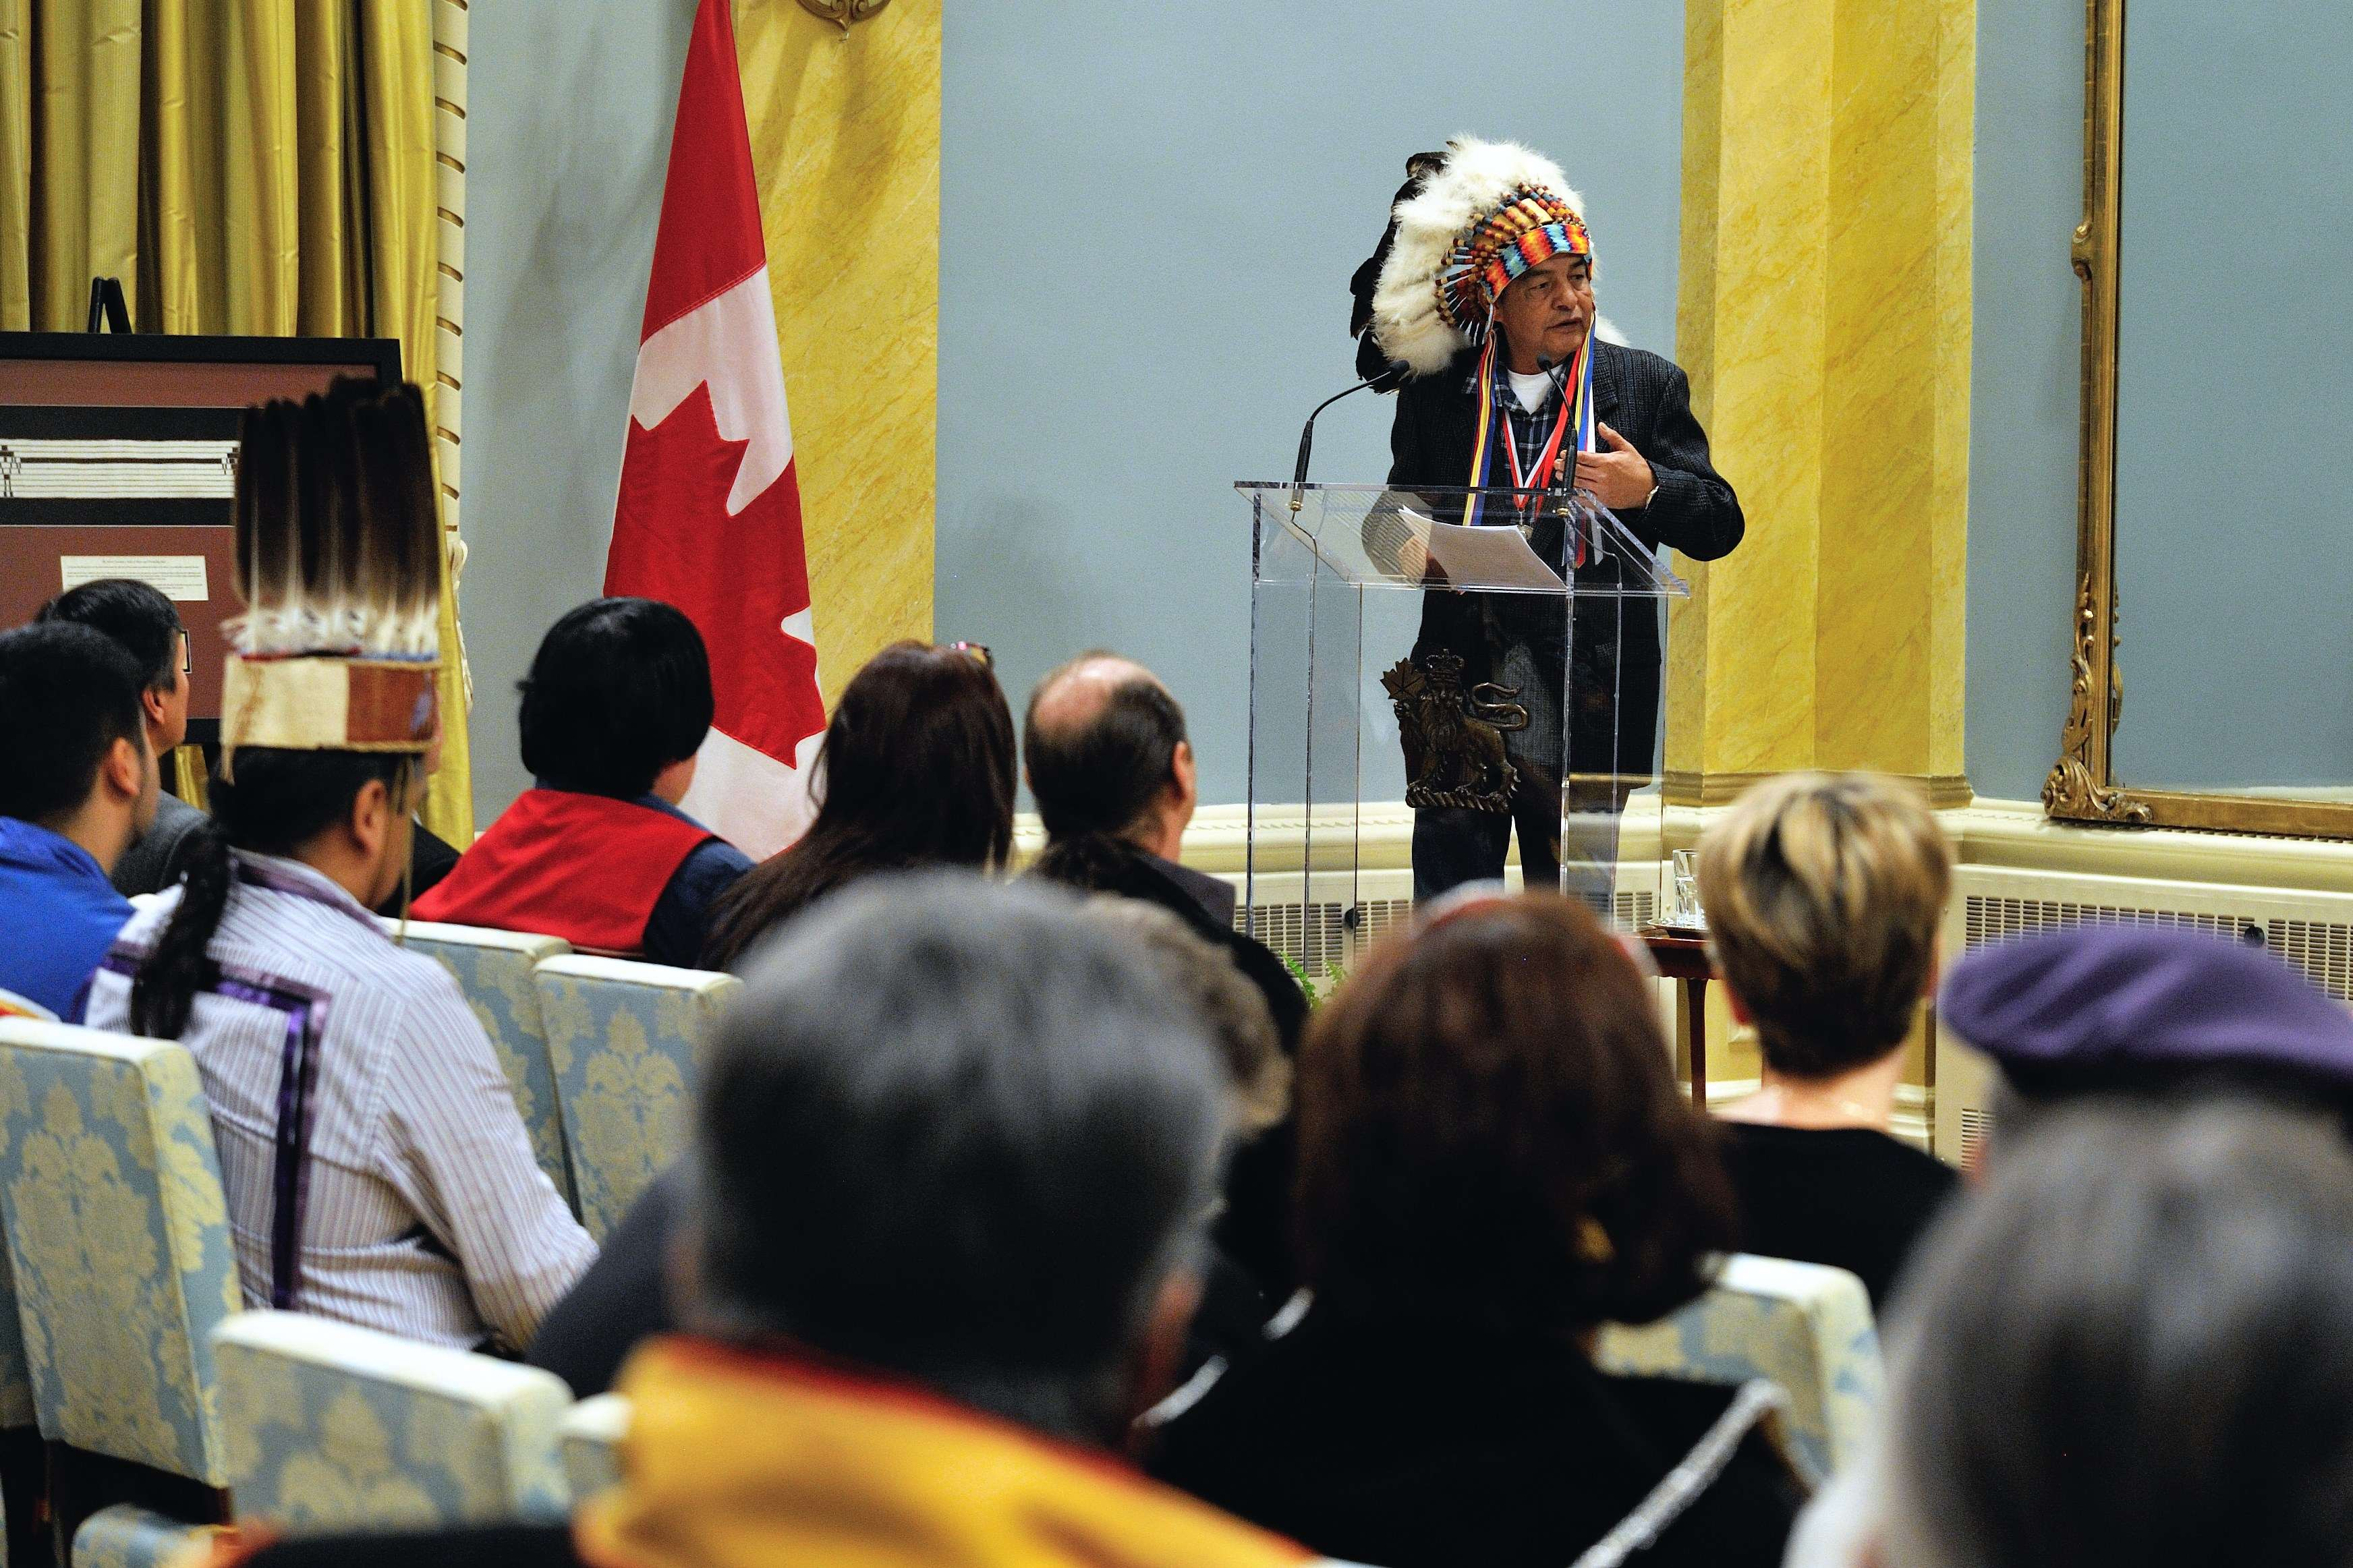 Following the presentation of medals and banners, Former Chief Lorne Wadikata, of the Wahpeton Dakota First Nation, spoke about the King George III medal.